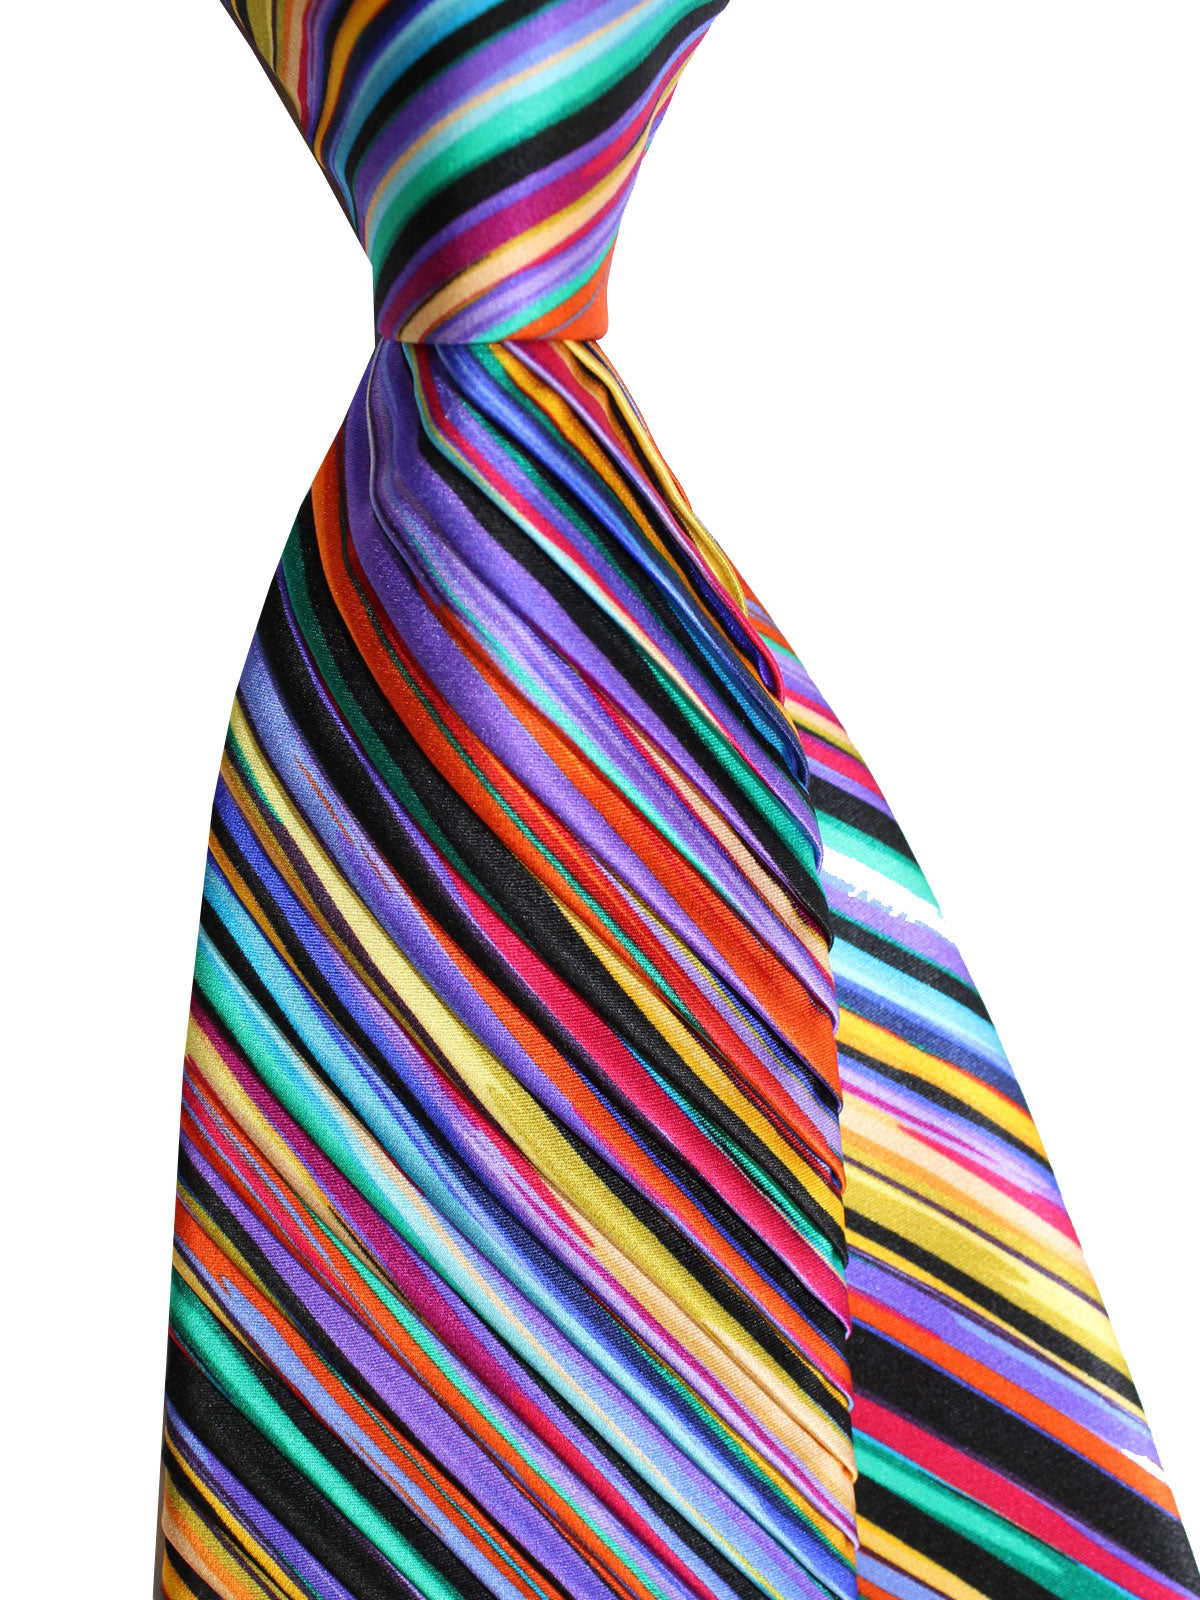 Vitaliano Pancaldi PLEATED SILK Tie Multicolored Stripes